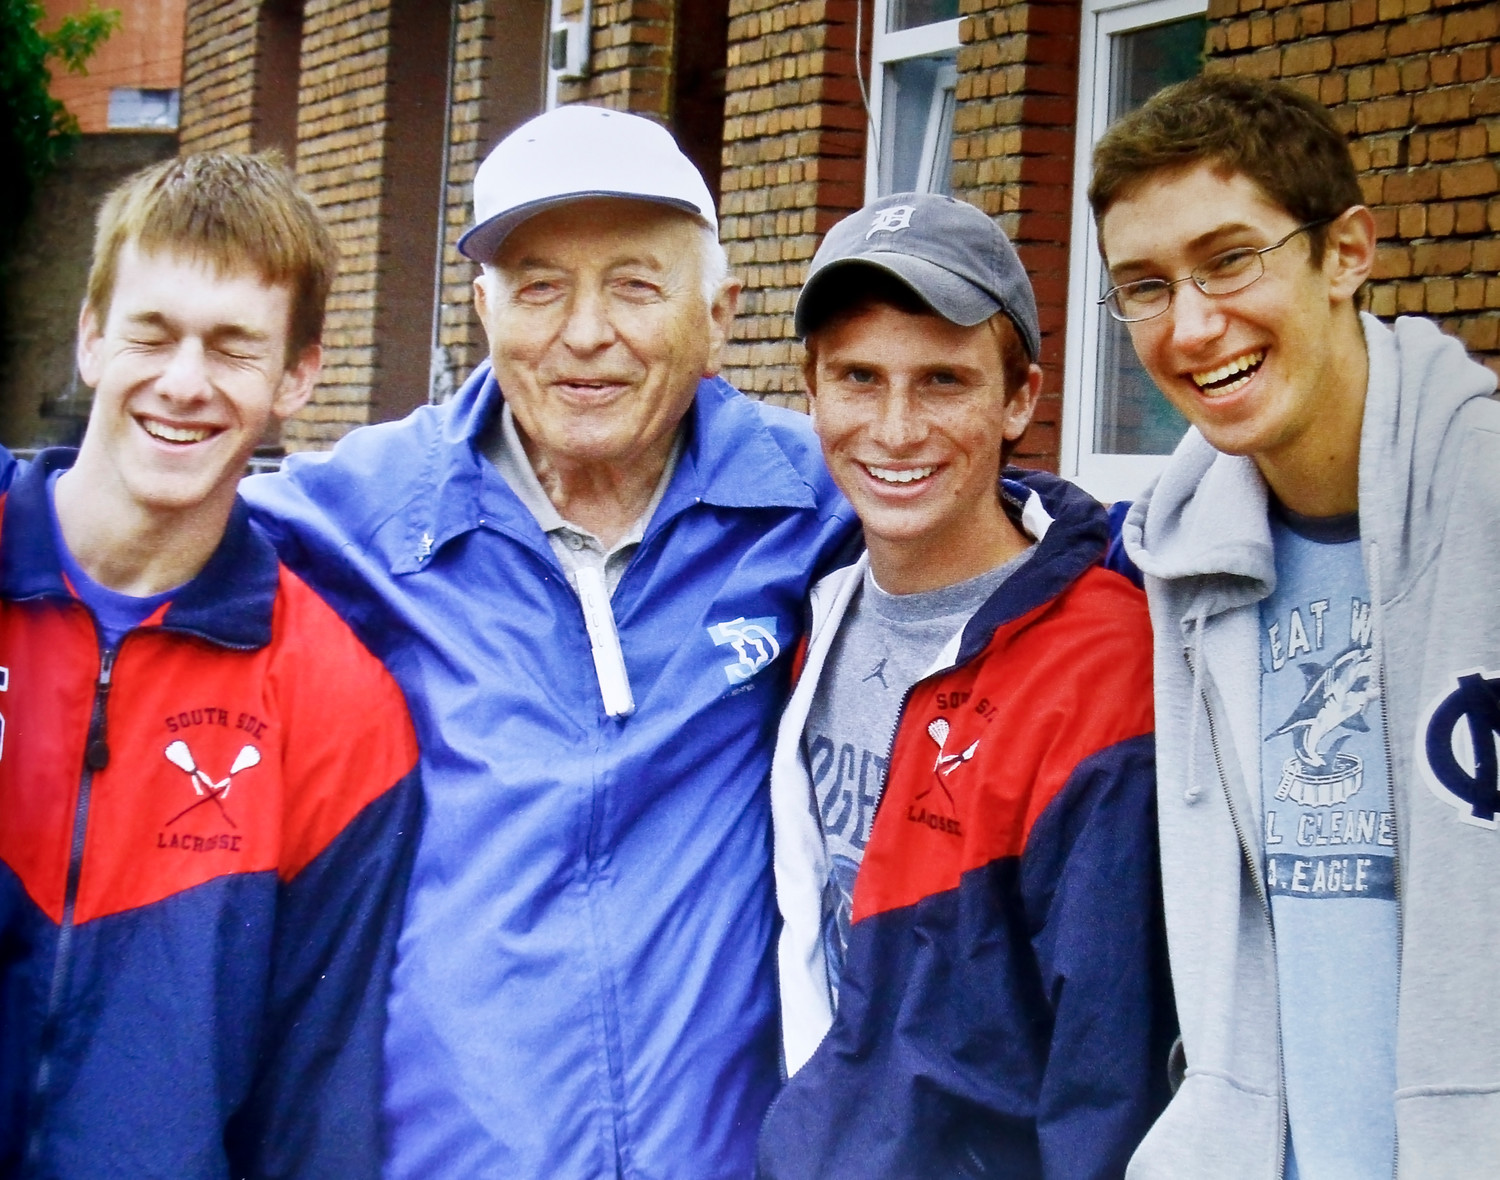 Ray Fishler visited Poland with three Rockville Centre families in 2007. Michael Heller, far left, Lucas Richner and Zachary Mandinach joined him outside his former home in Kazimierza Wielka, Poland.